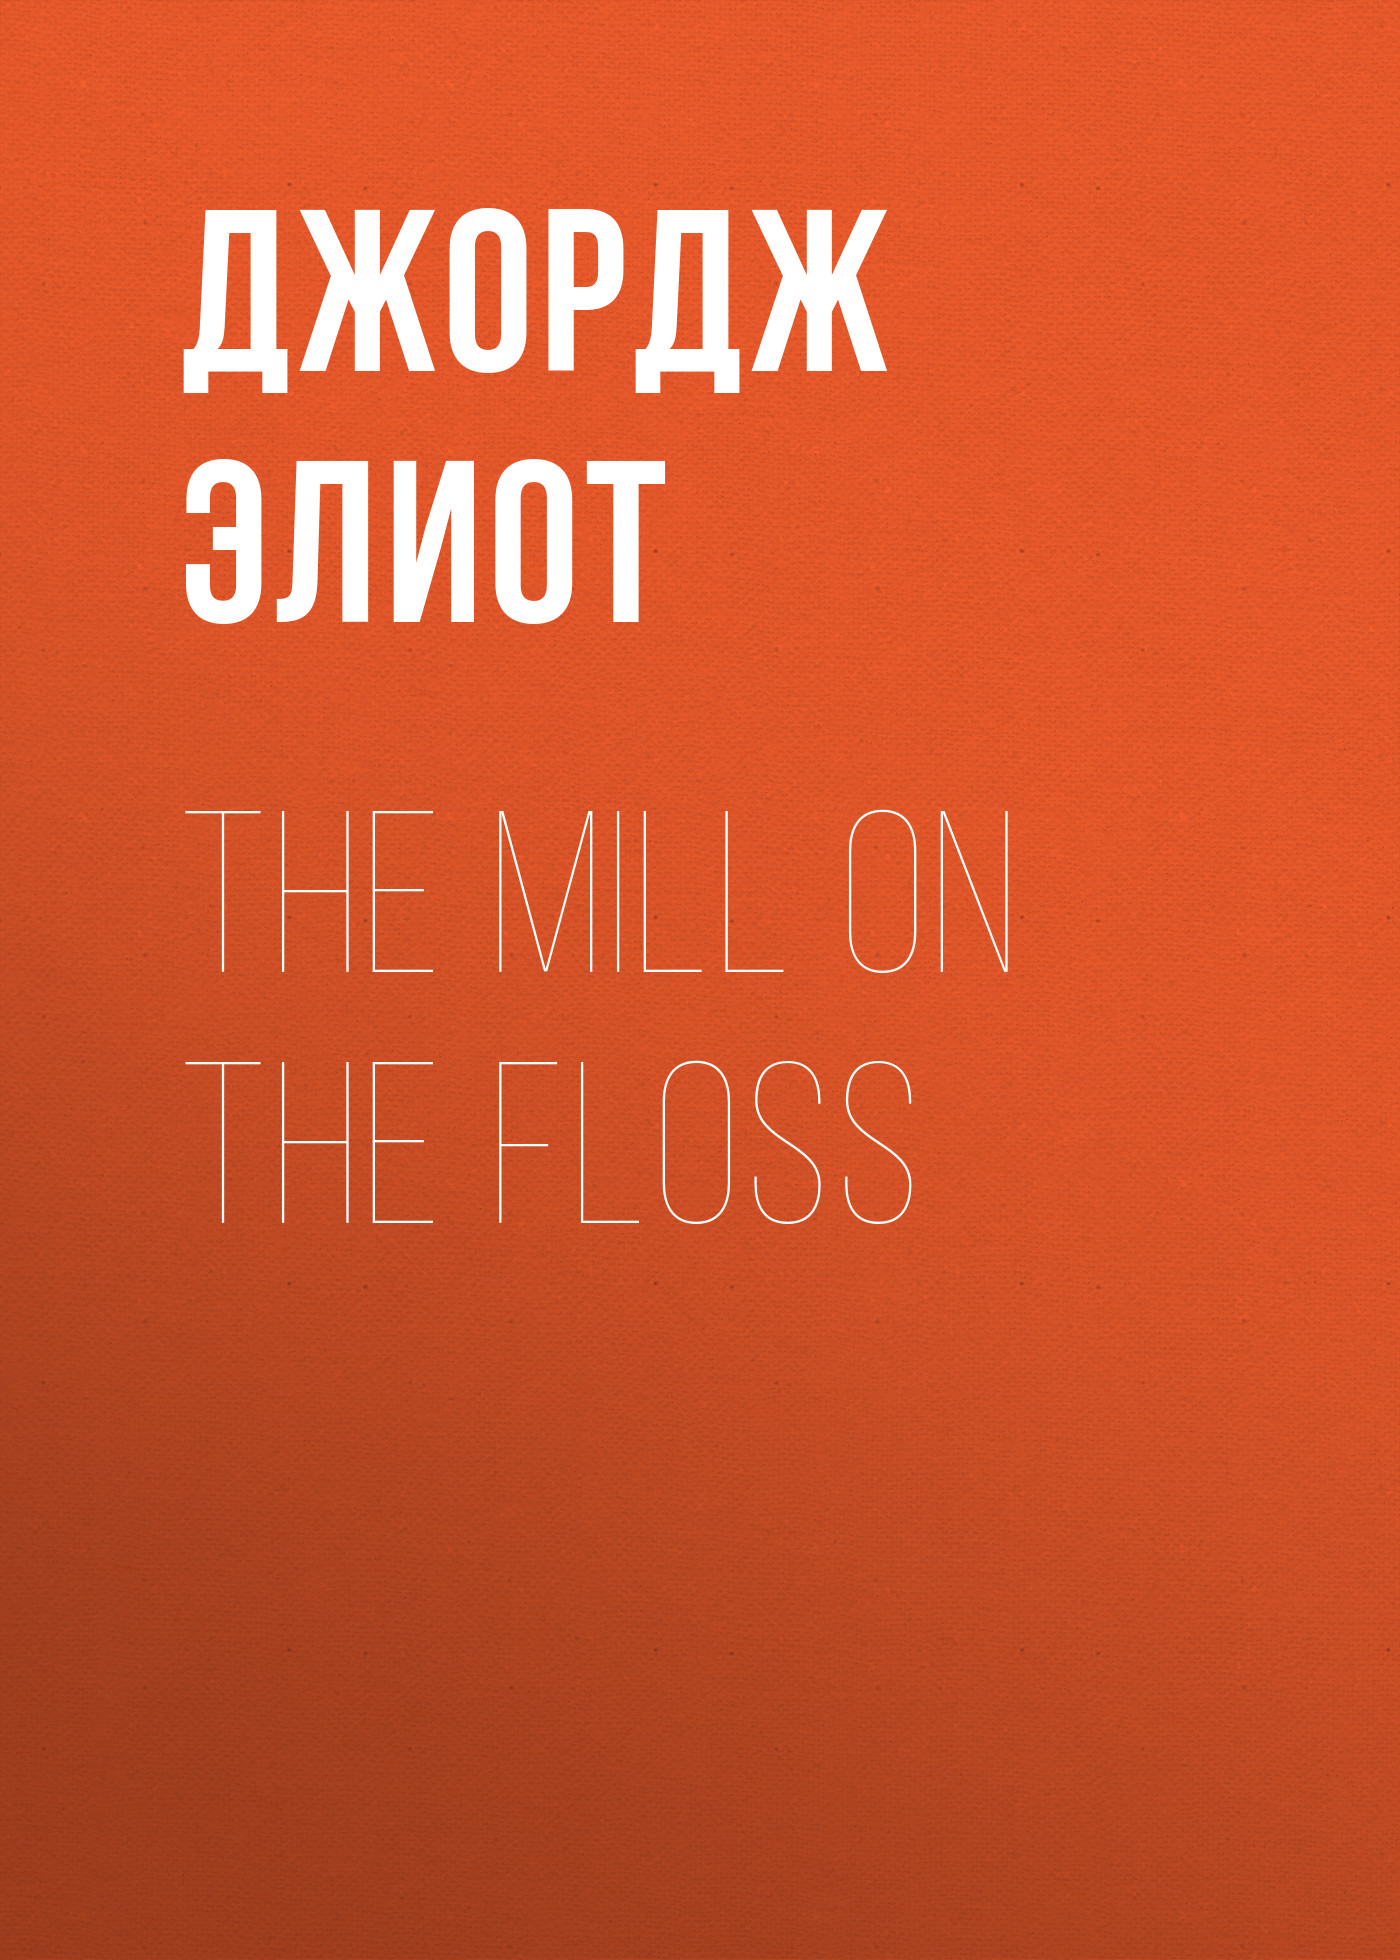 Джордж Элиот The Mill on the Floss джордж элиот daniel deronda